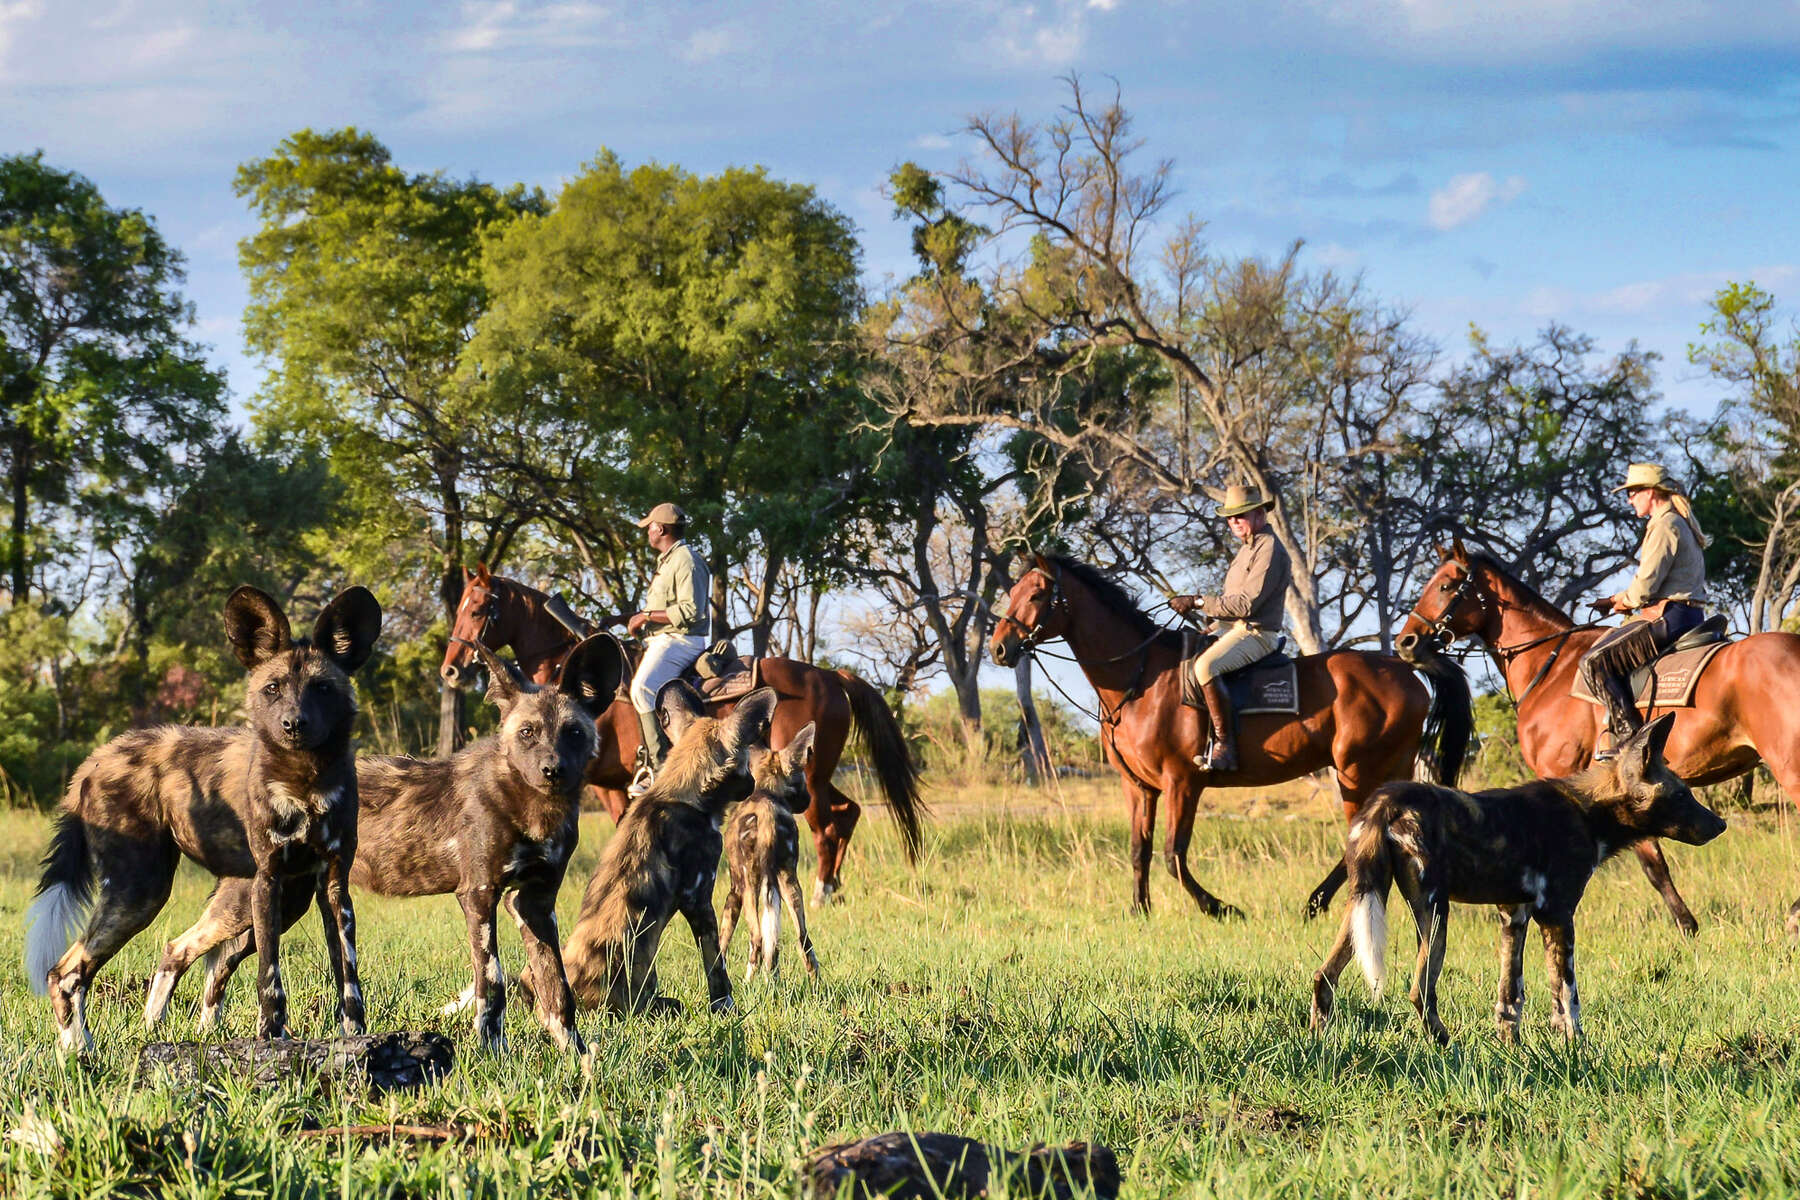 Wild dogs at Macatoo Camp, Botswana